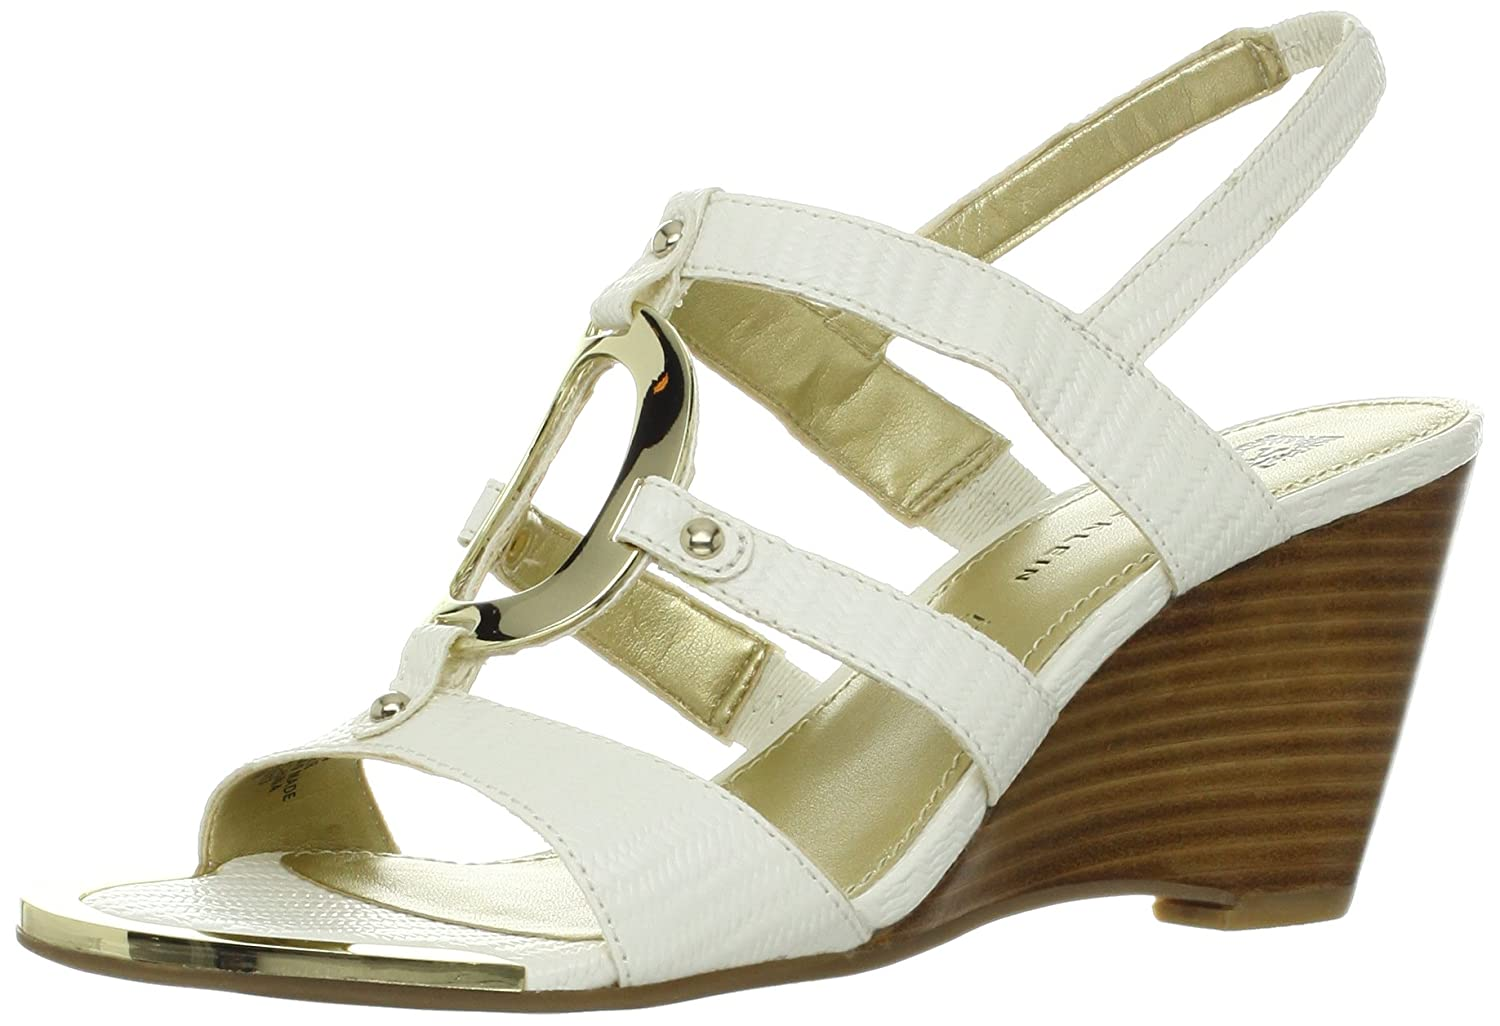 Anne Klein AK Women's Pylon Synthetic Wedge Sandal B00AHY6PT4 10 B(M) US|White